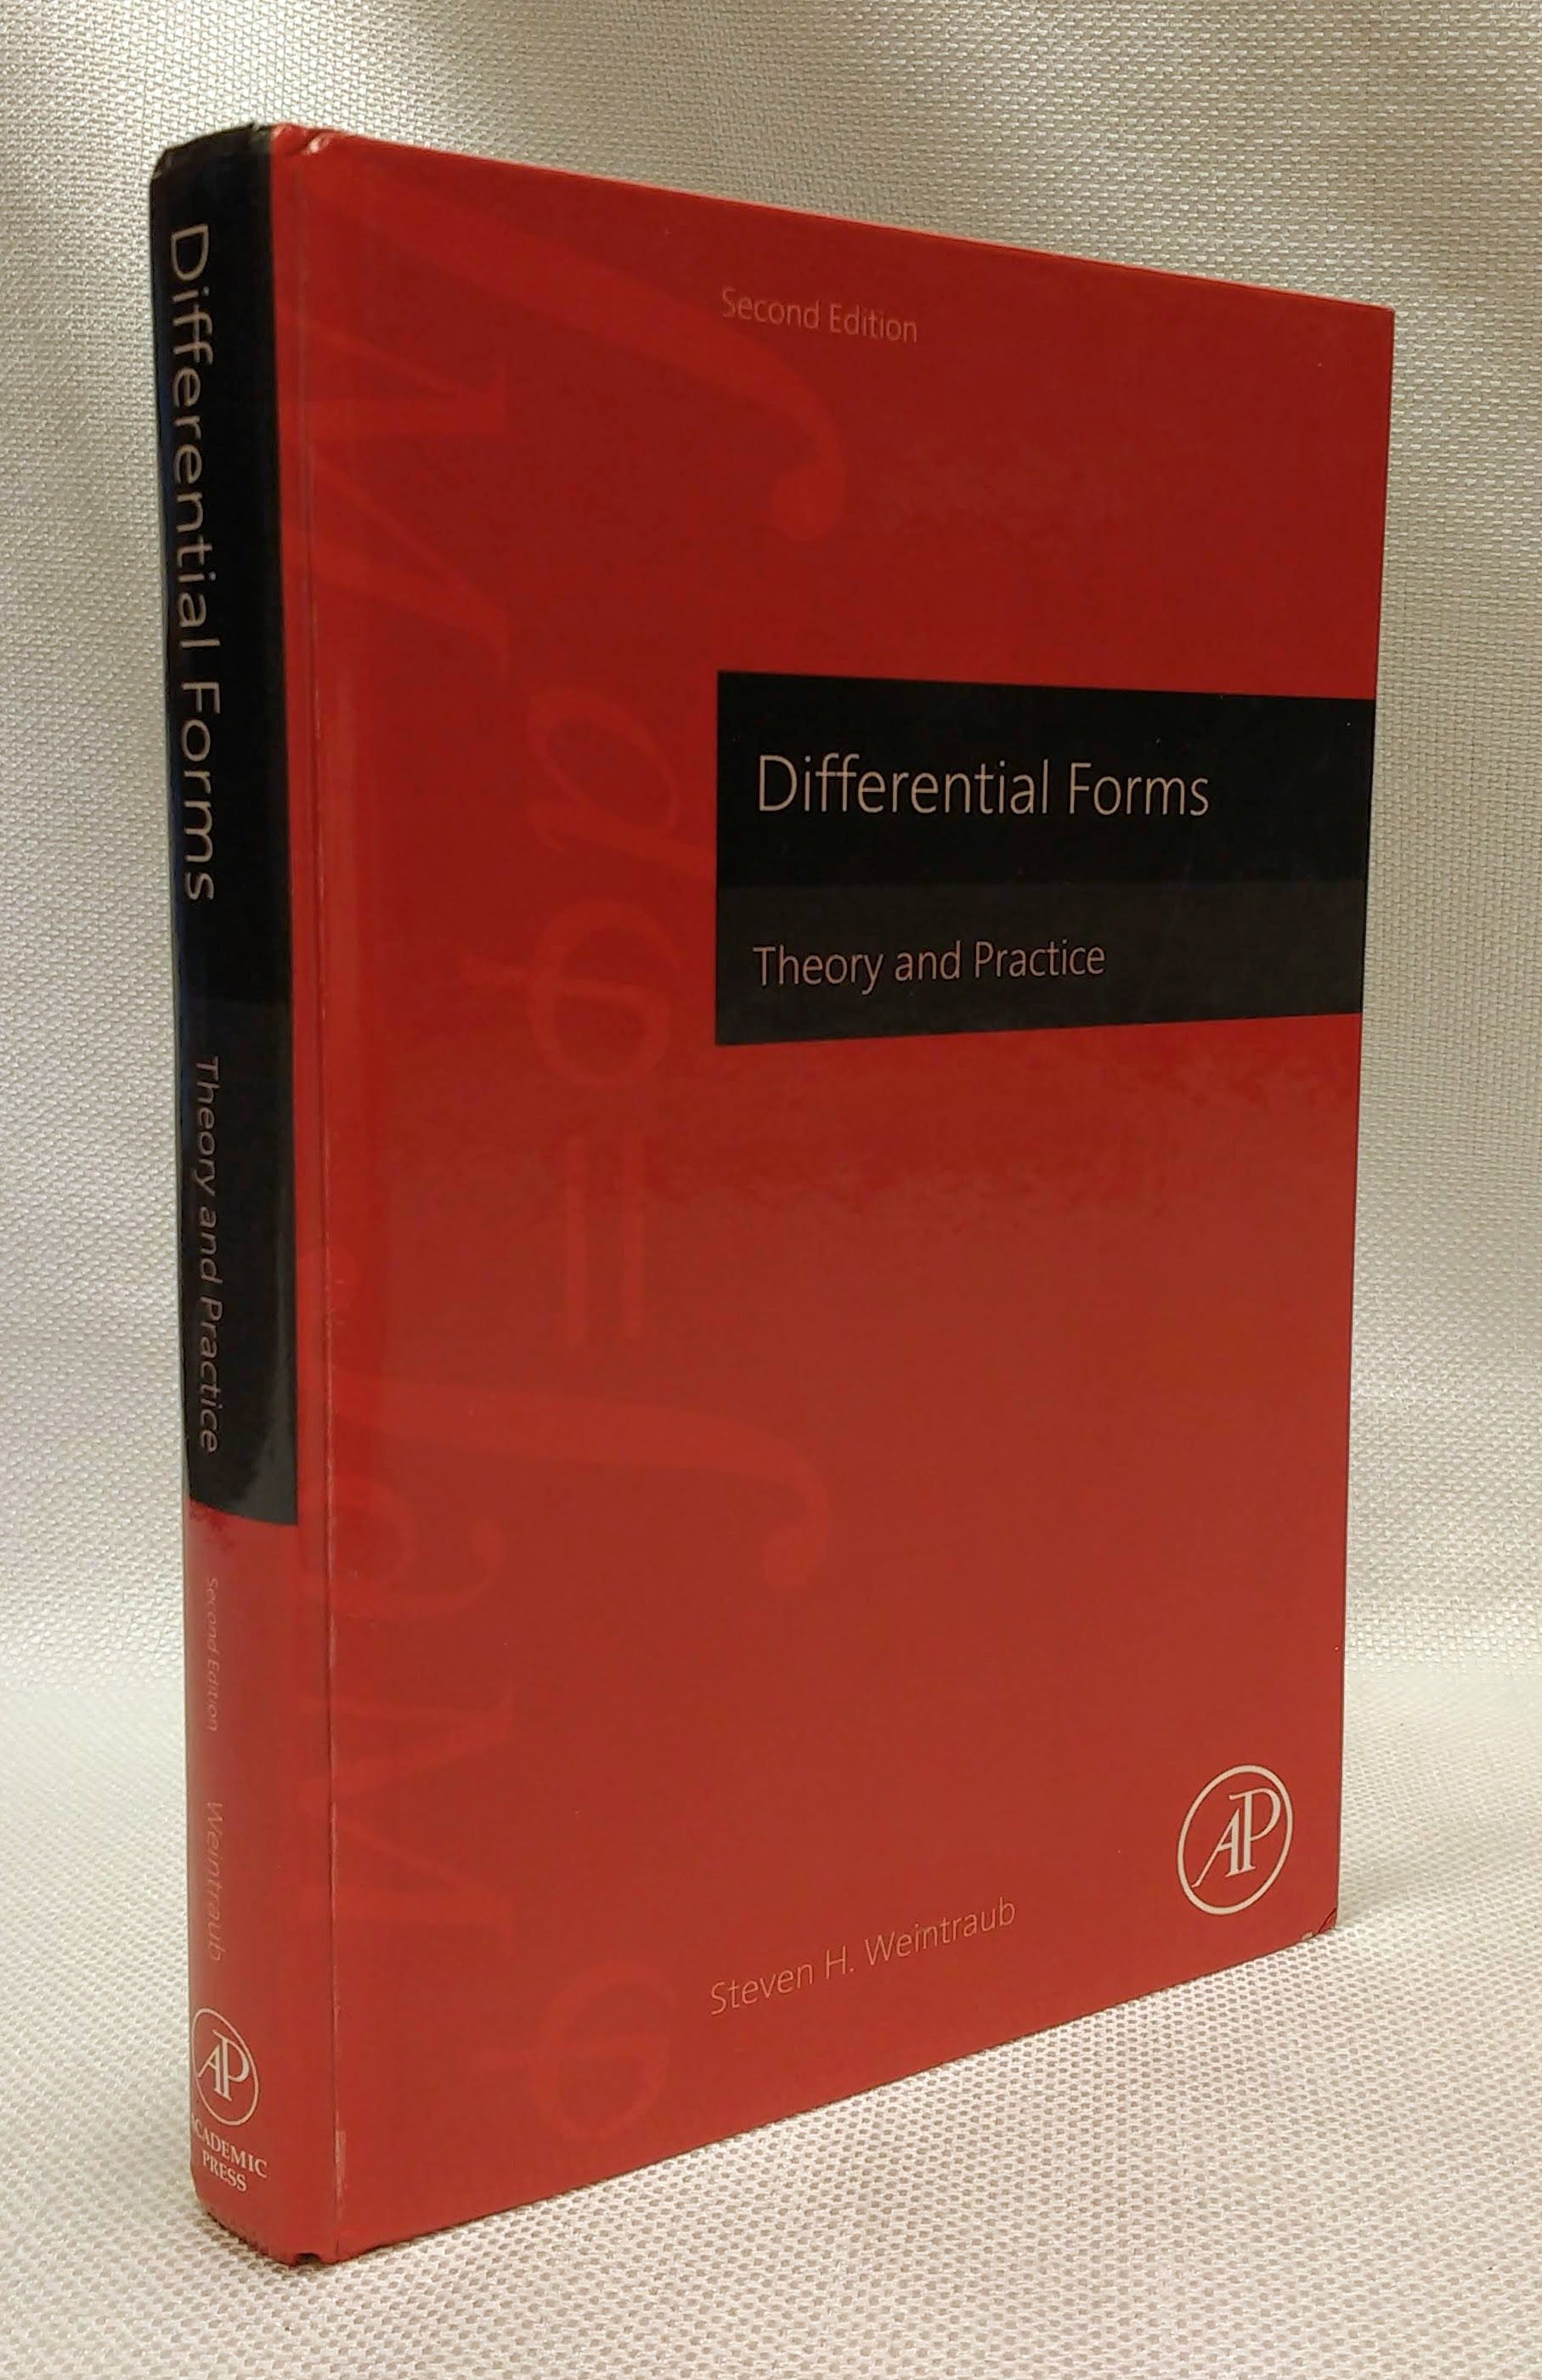 Differential Forms: Theory and Practice, Weintraub, Steven H.